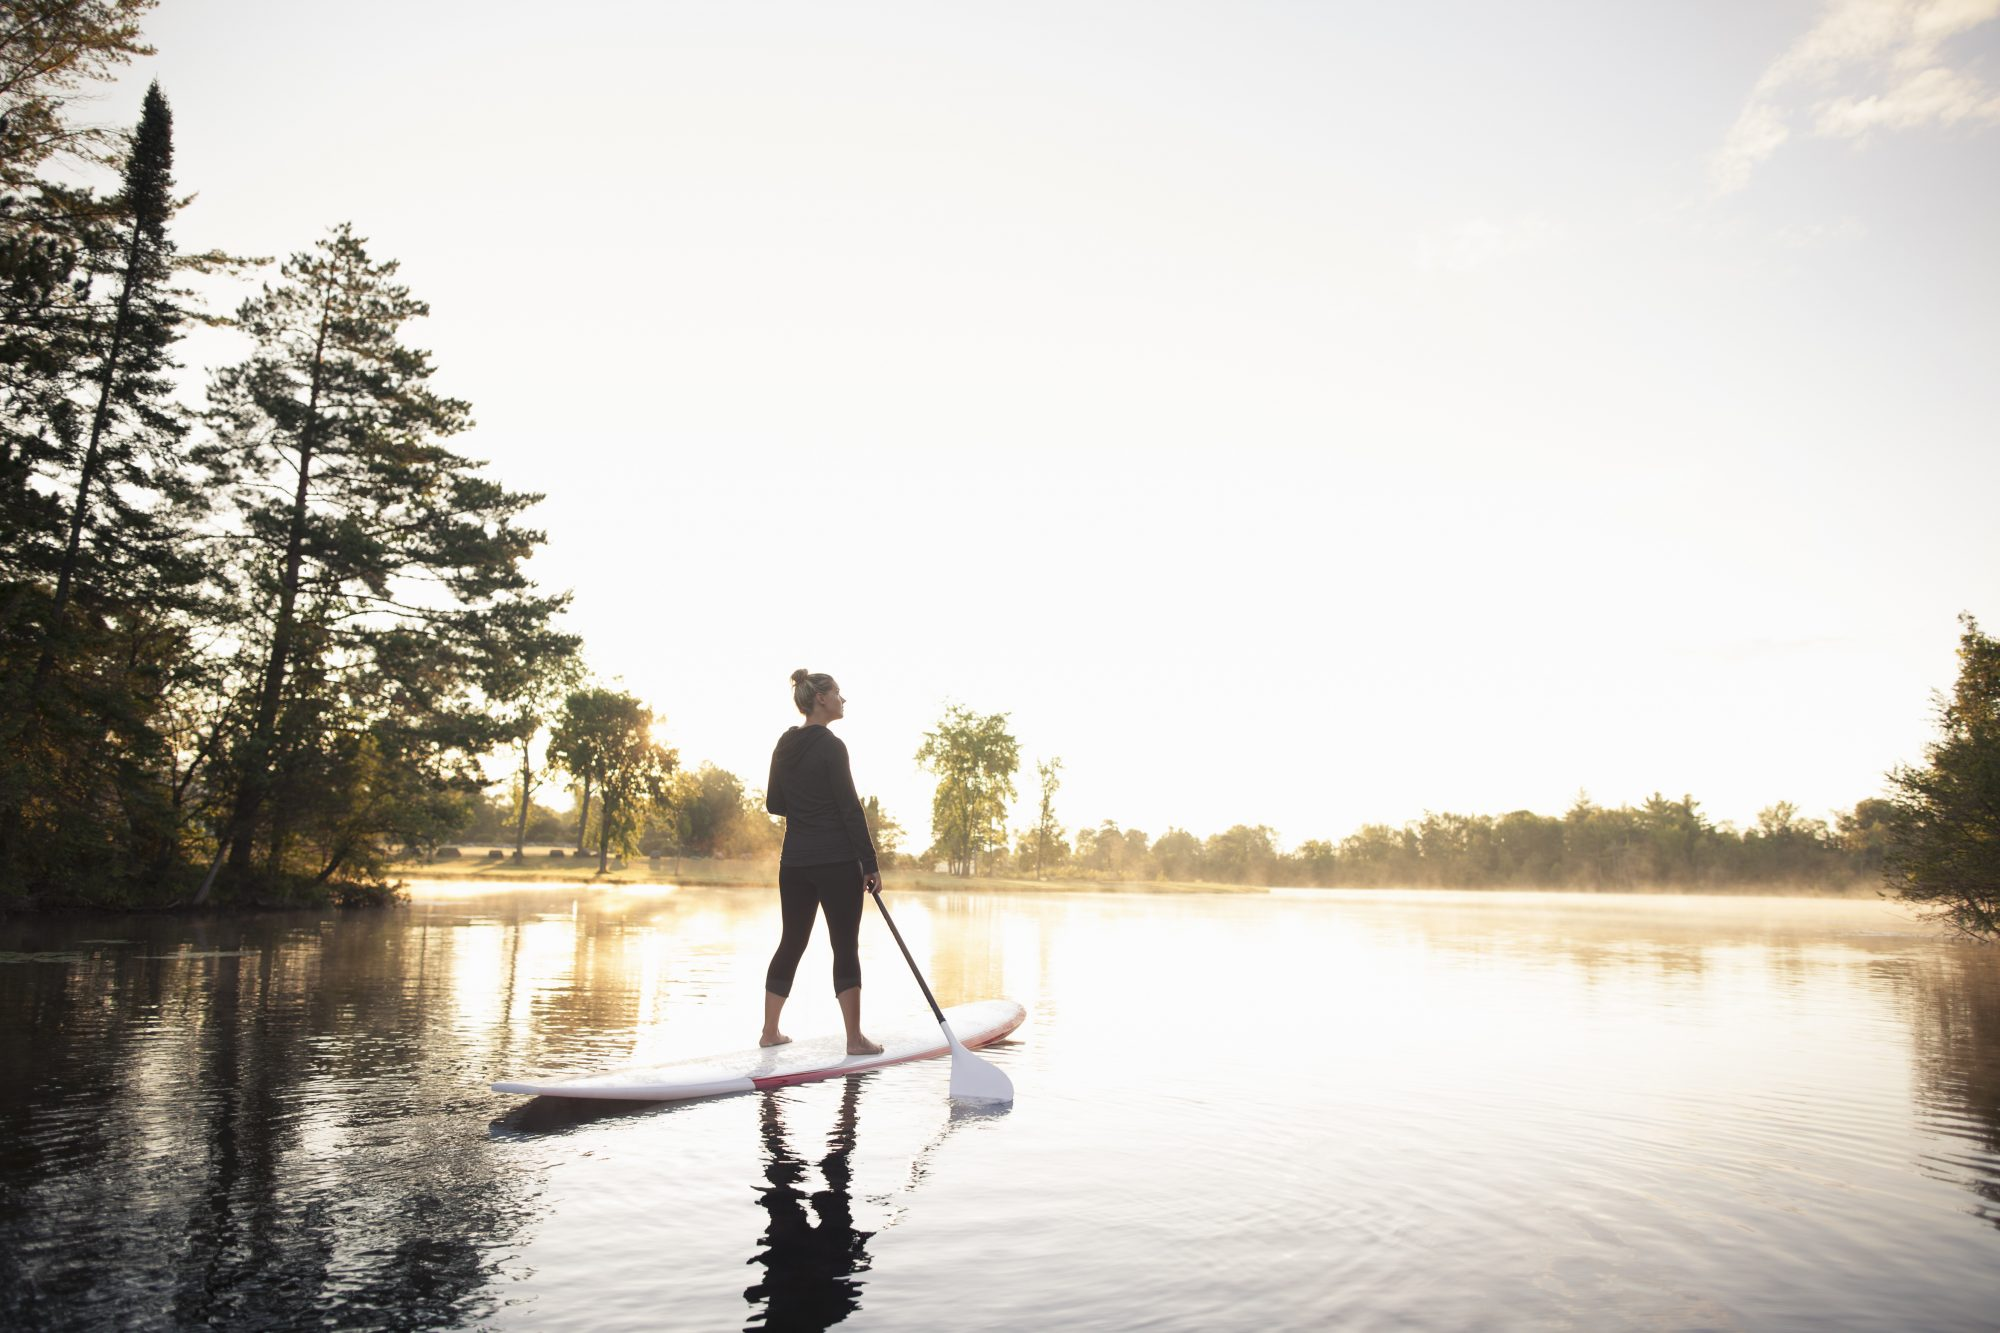 Stand-up paddleboarding (SUP)